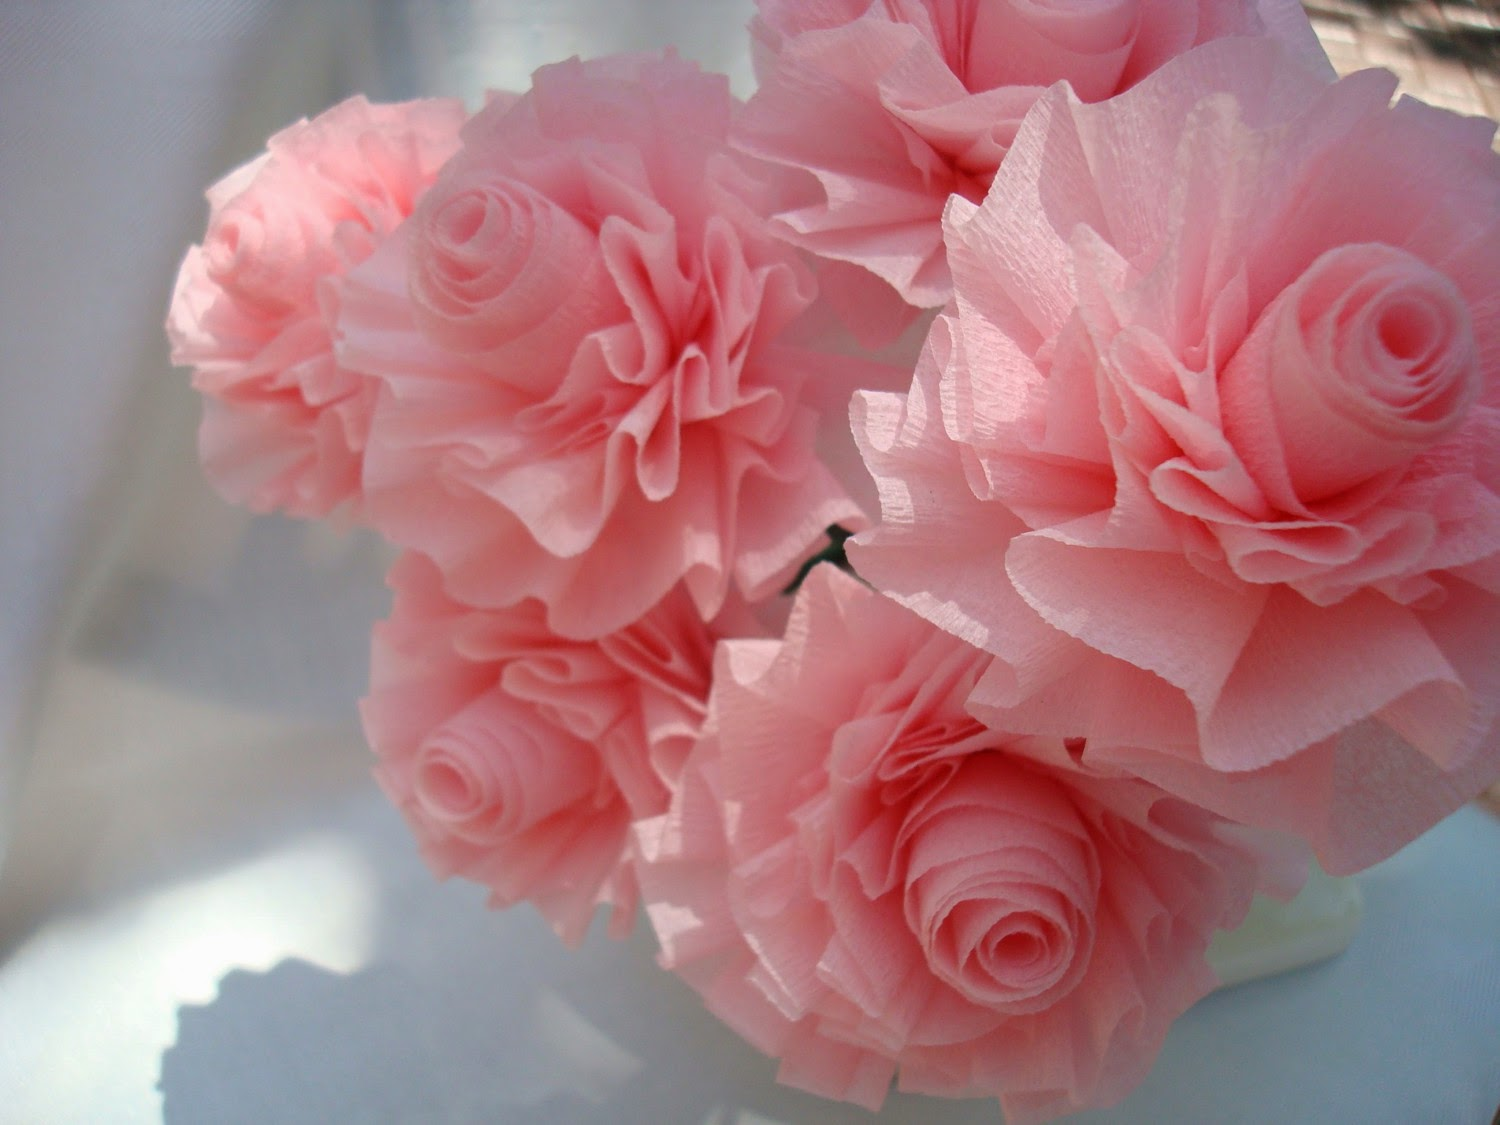 My Own Party Ideas Diy Pink Crepe Paper Rose